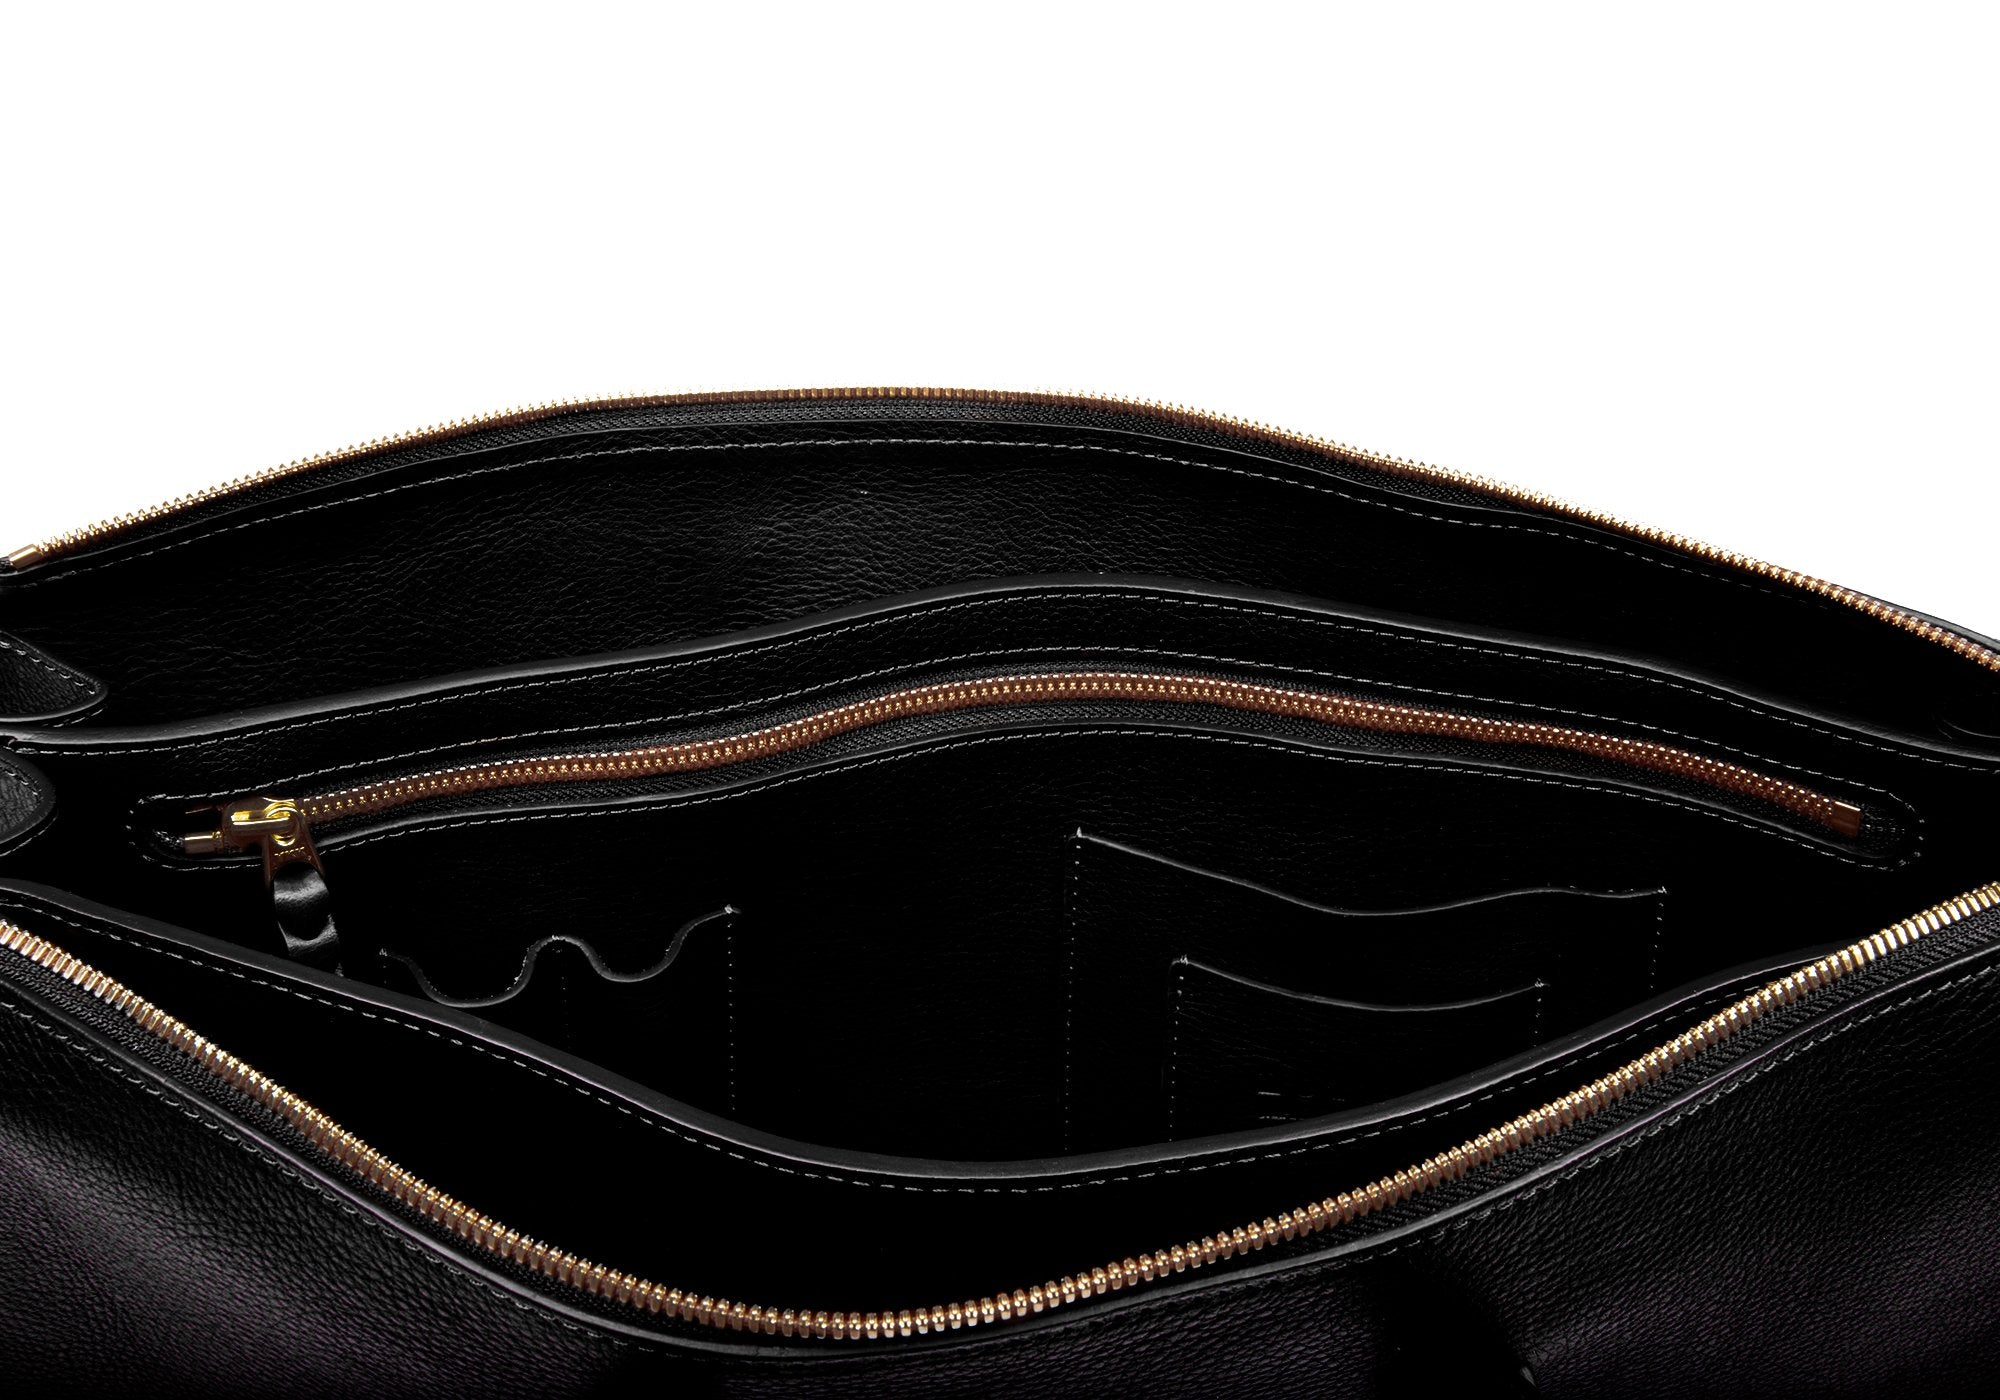 The Triumph Briefcase Black